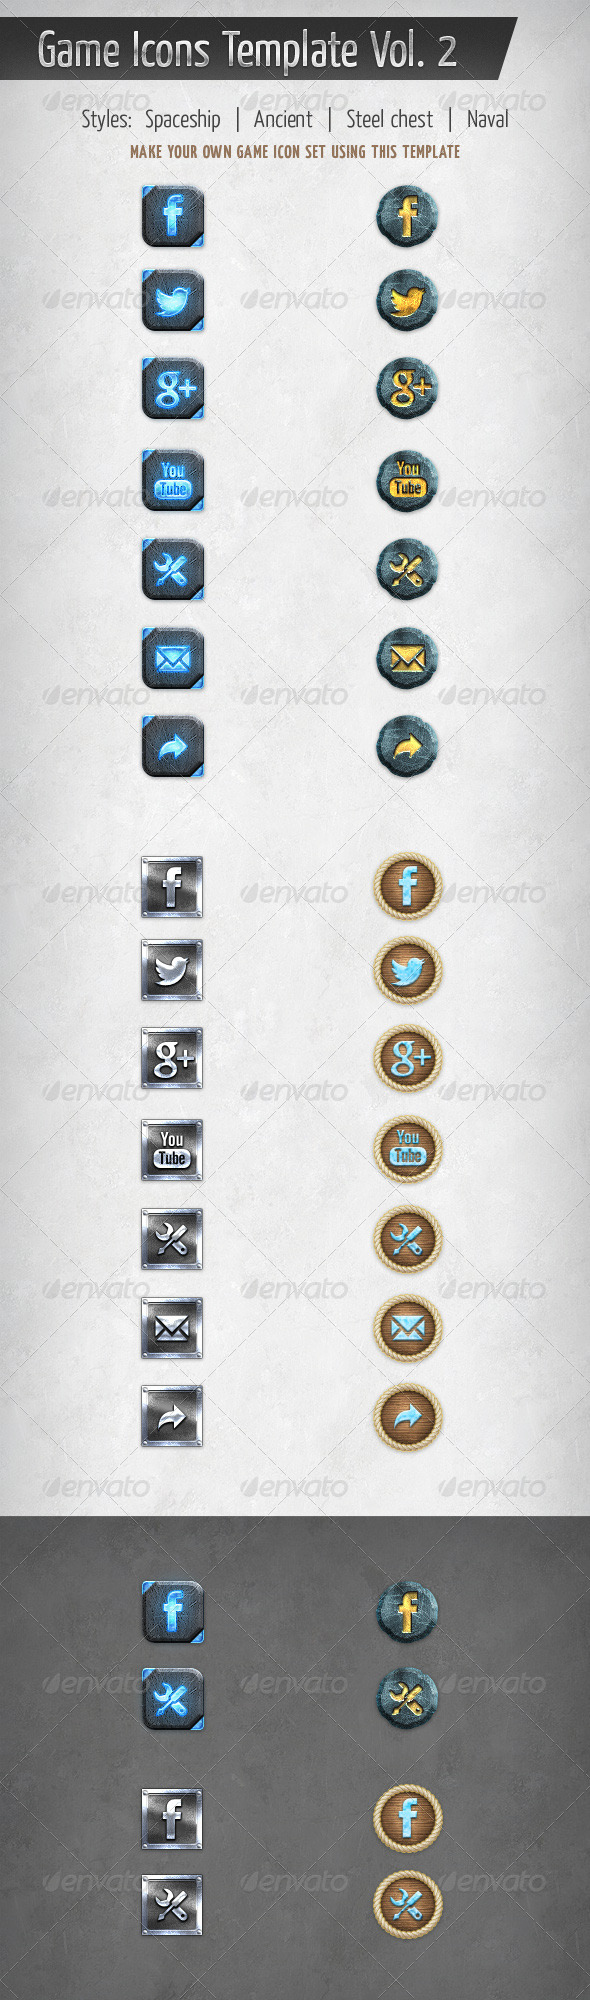 GraphicRiver Game Icons Template Vol 2 5870637